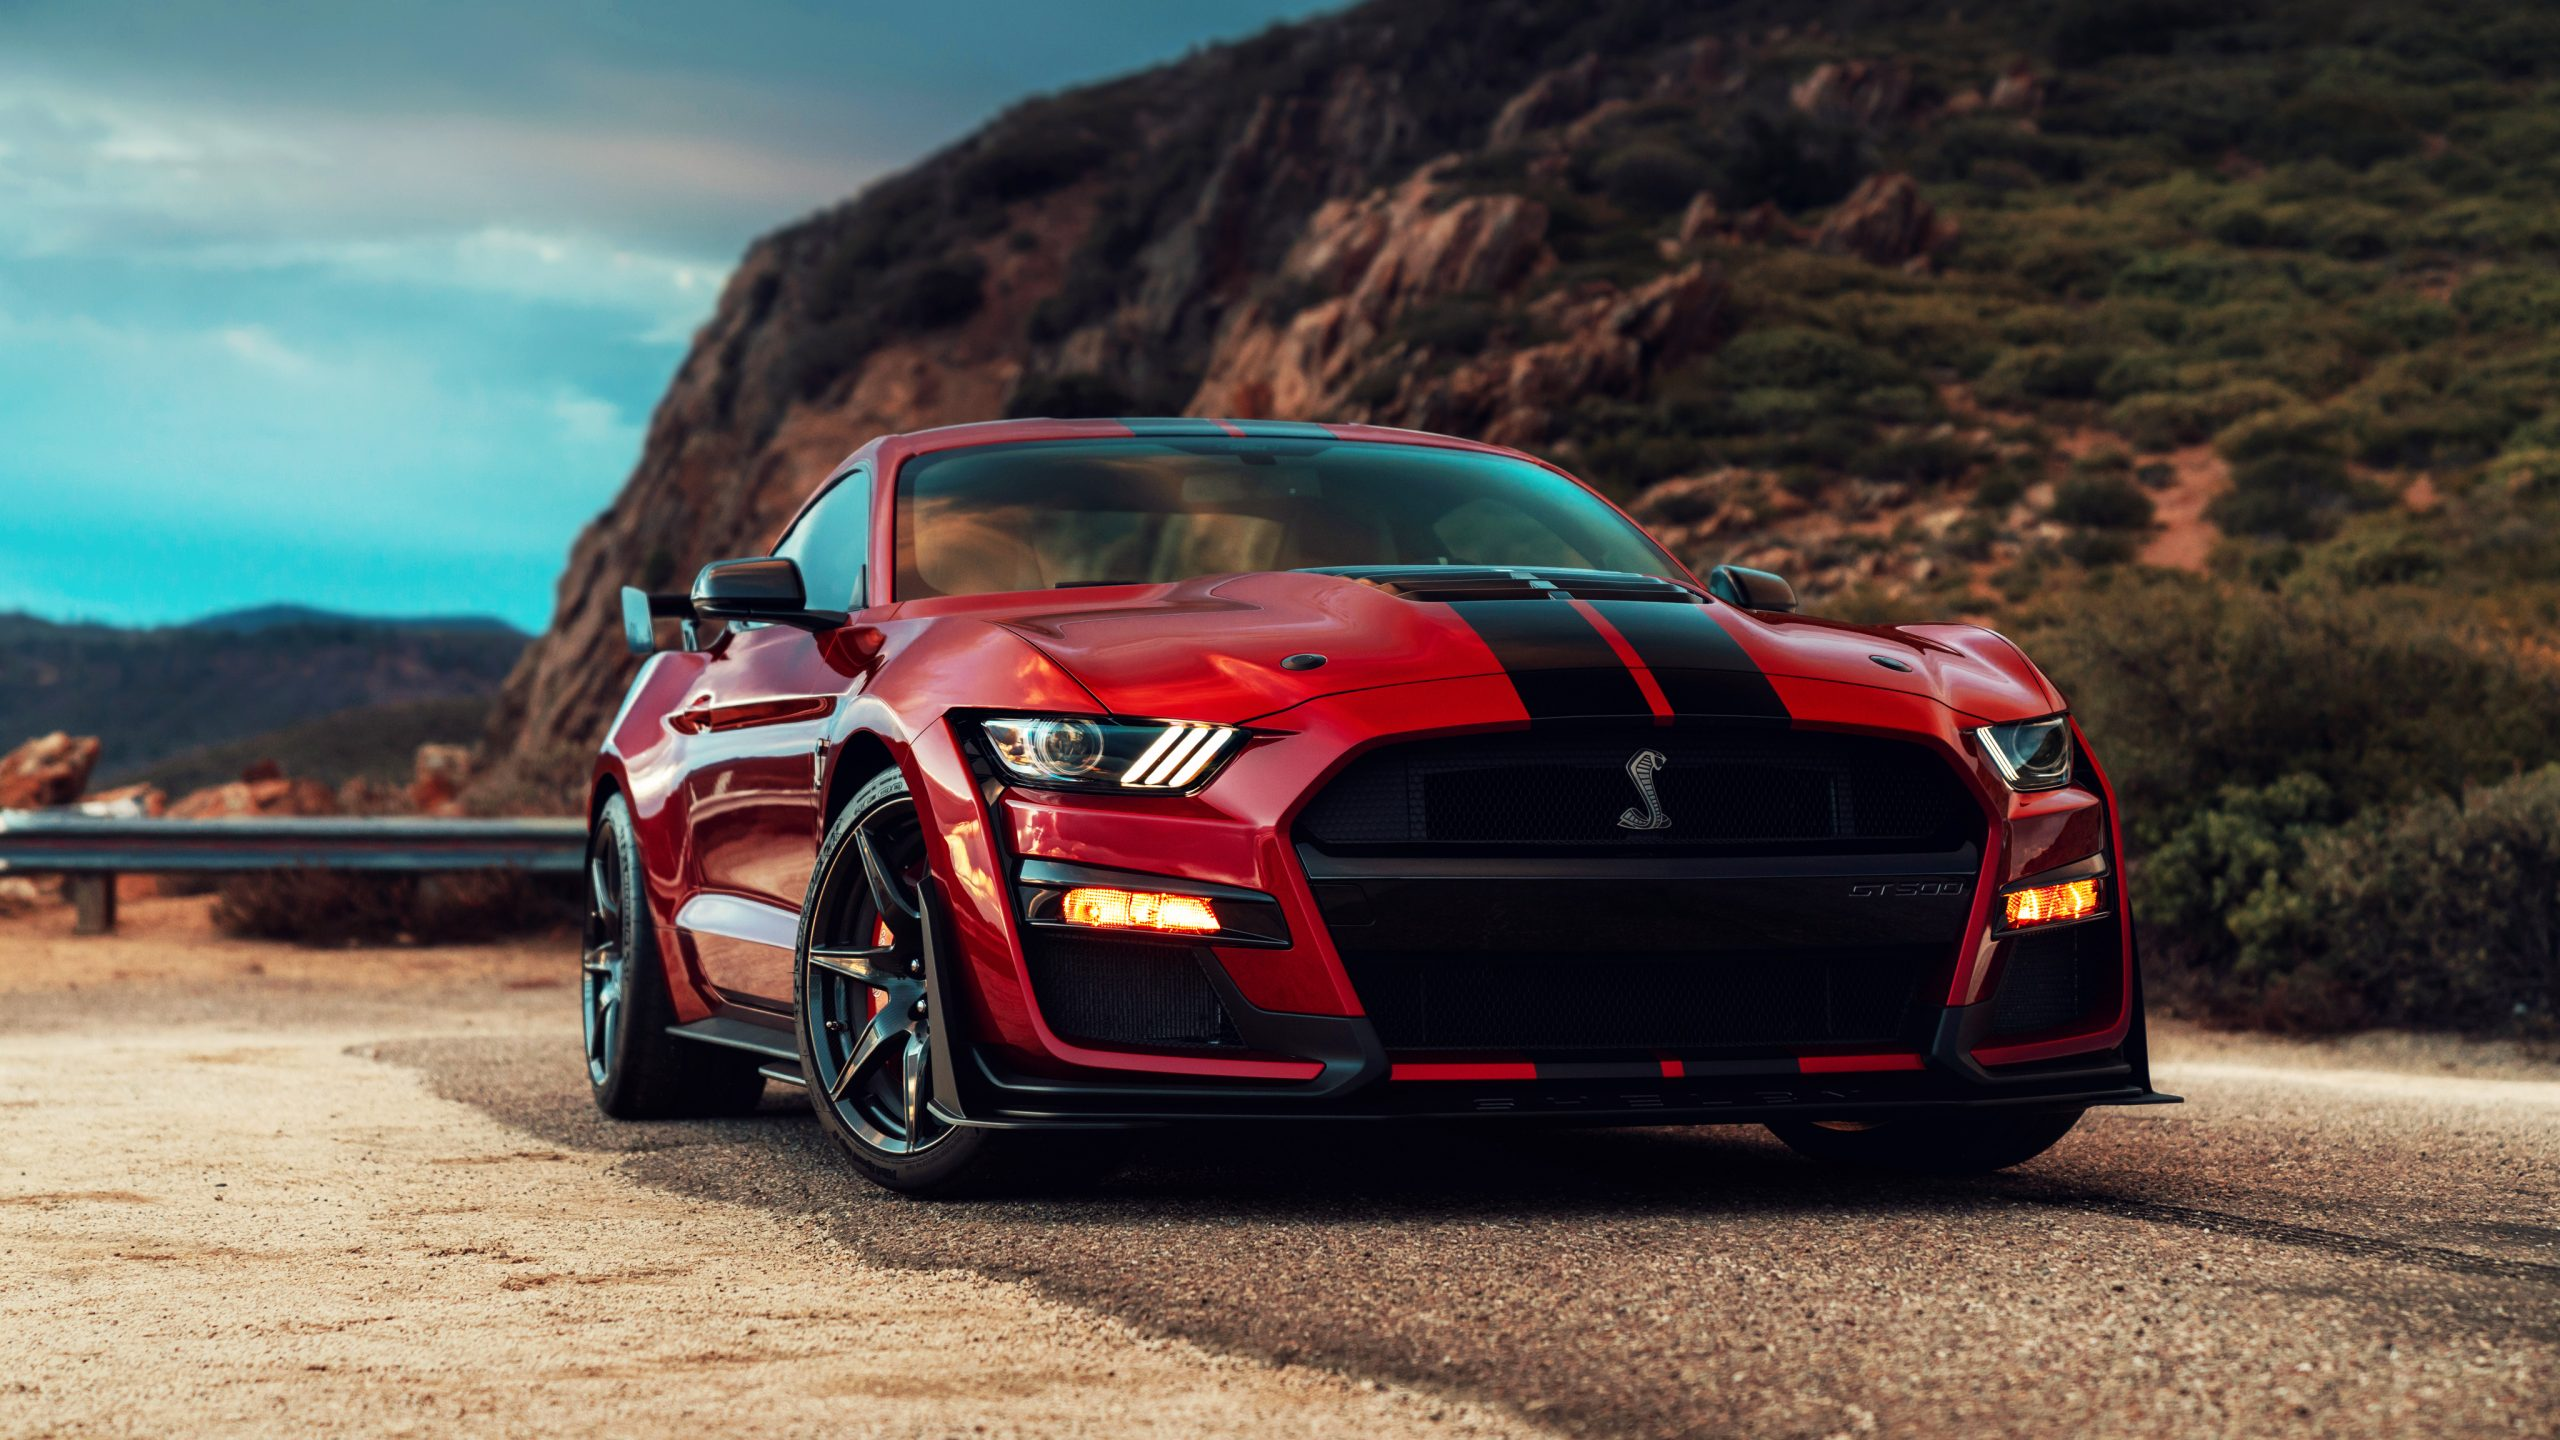 Ford Updates the Mustang and Shelby GT5 for 5 Model Year